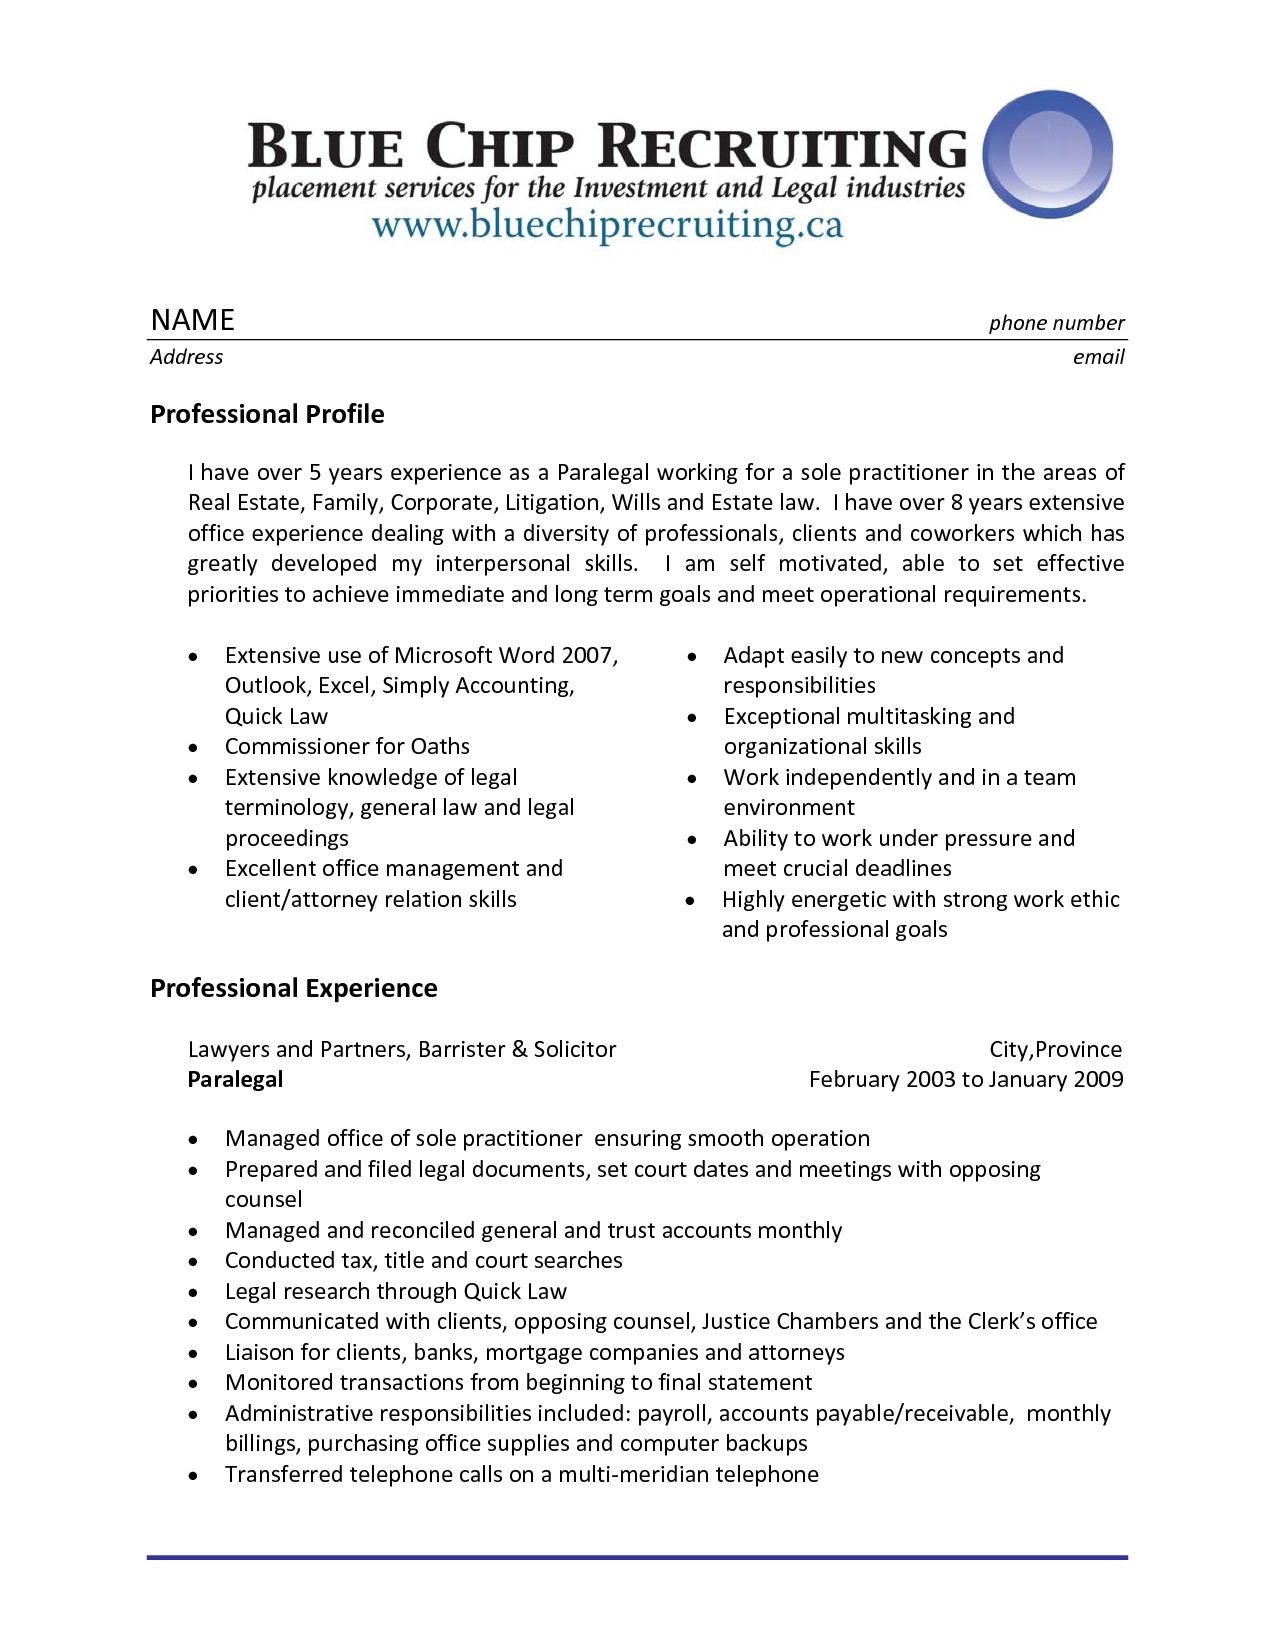 sample resume legal assistant experience professional